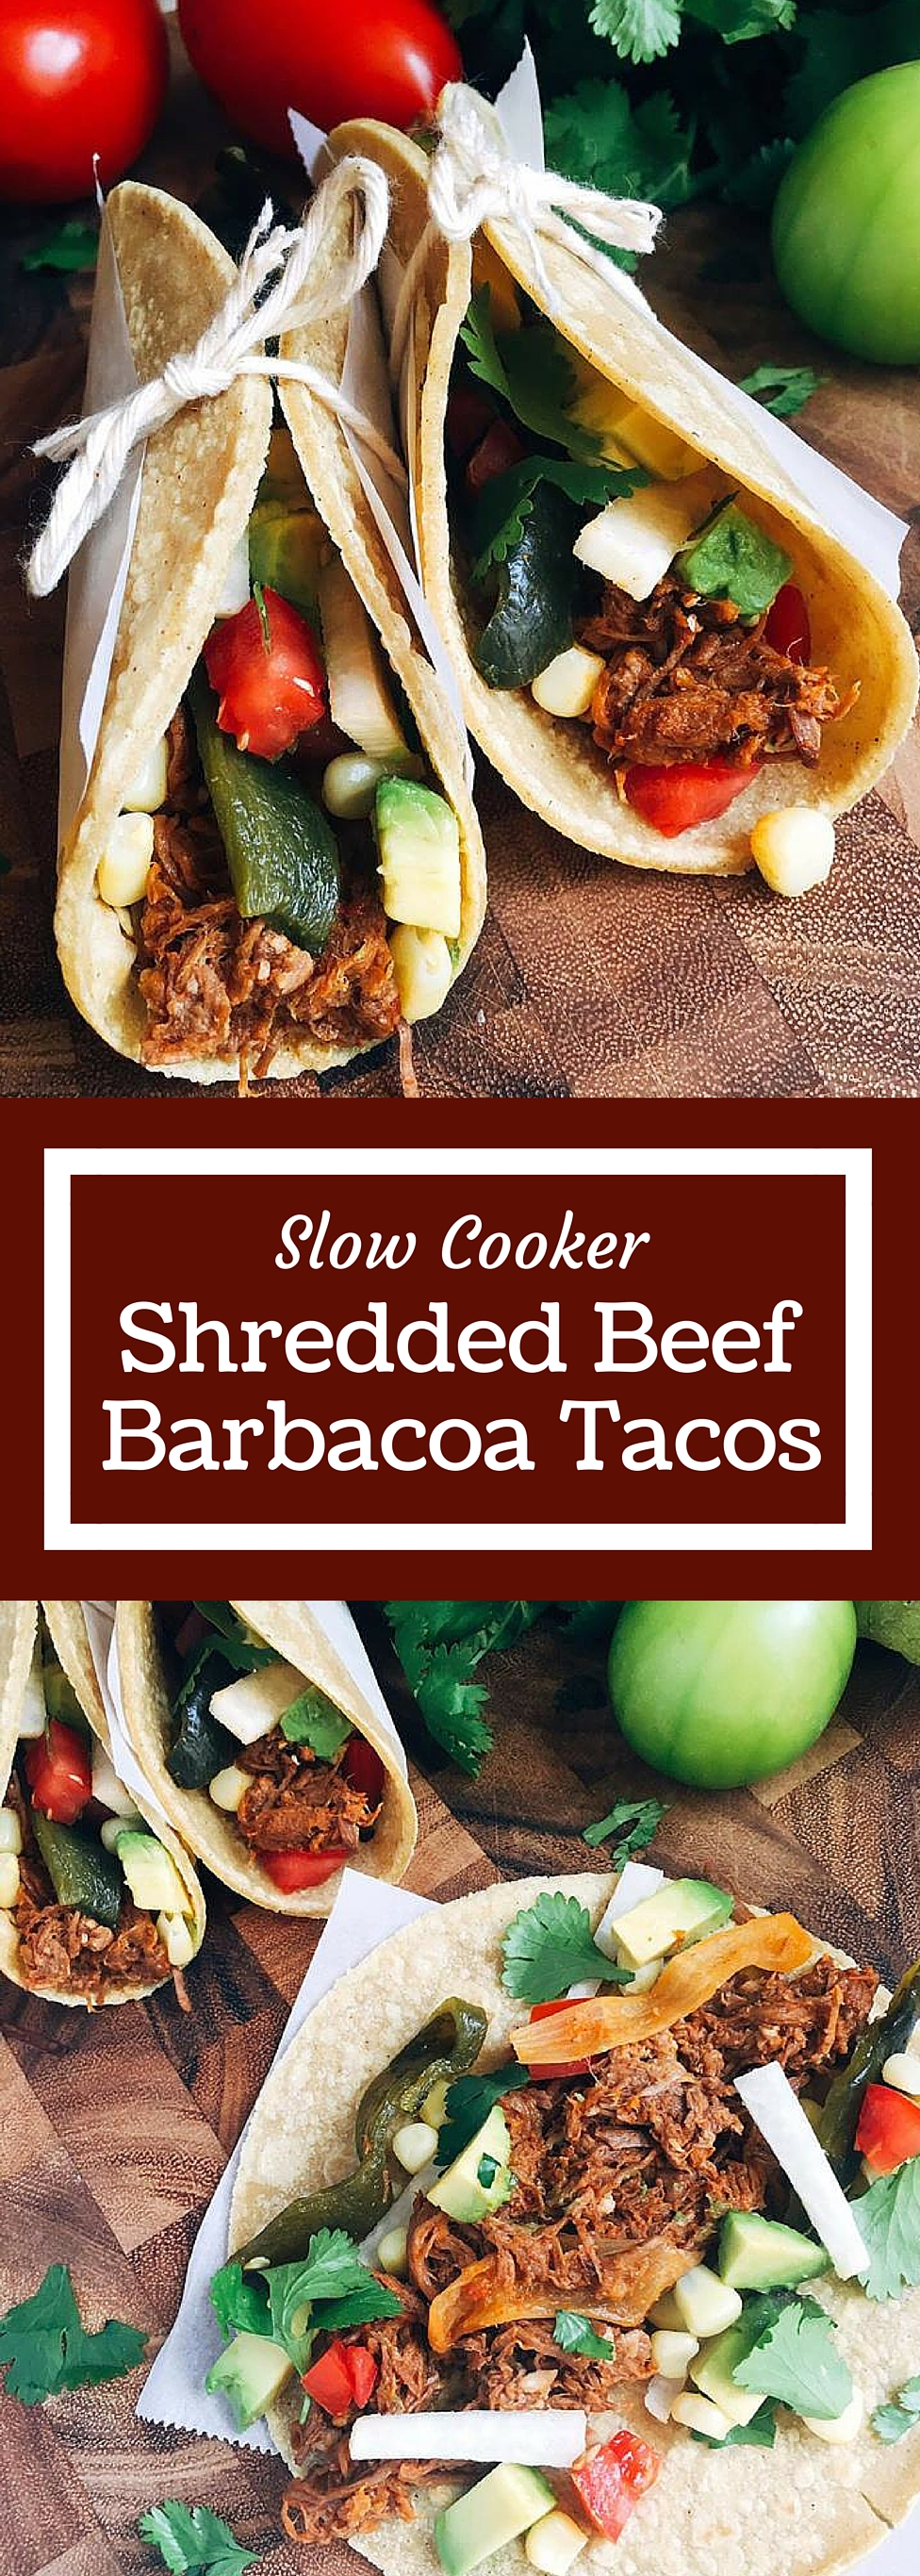 Slow Cooker Shredded Beef Barbacoa Tacos - Three Olives Branch